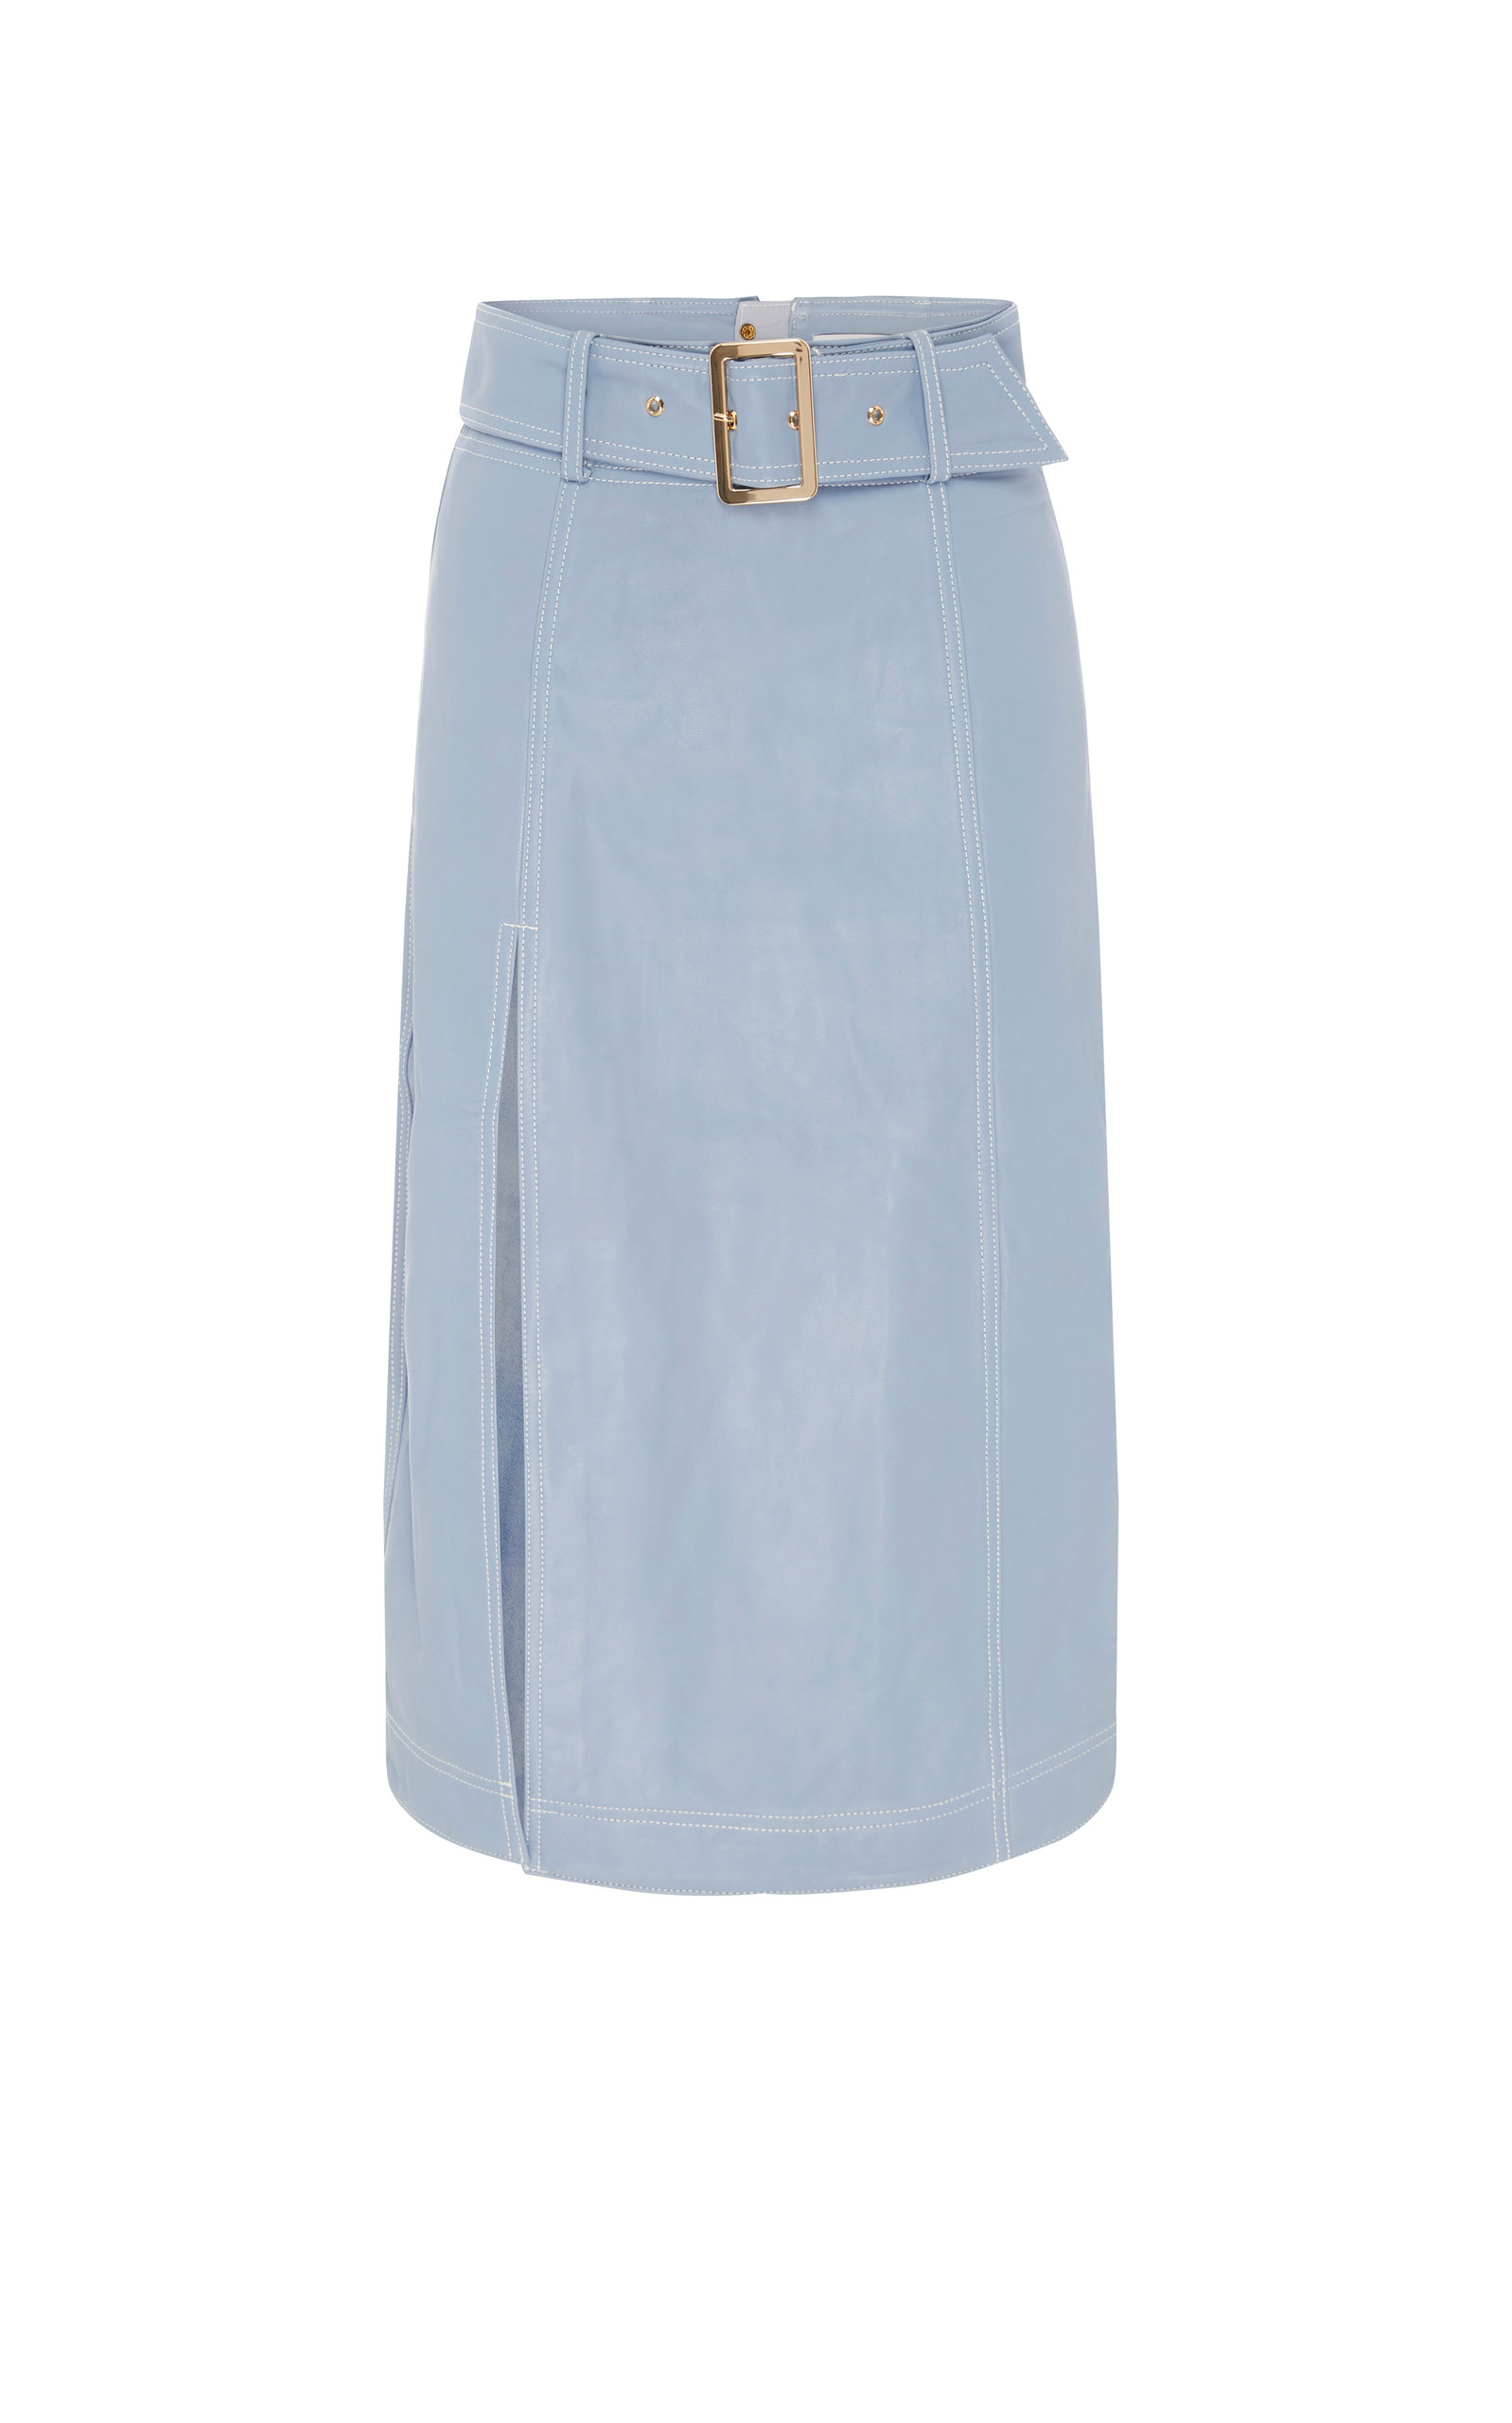 Alice Mccall | Alice McCall Incantations Lamb Leather Skirt | Clouty